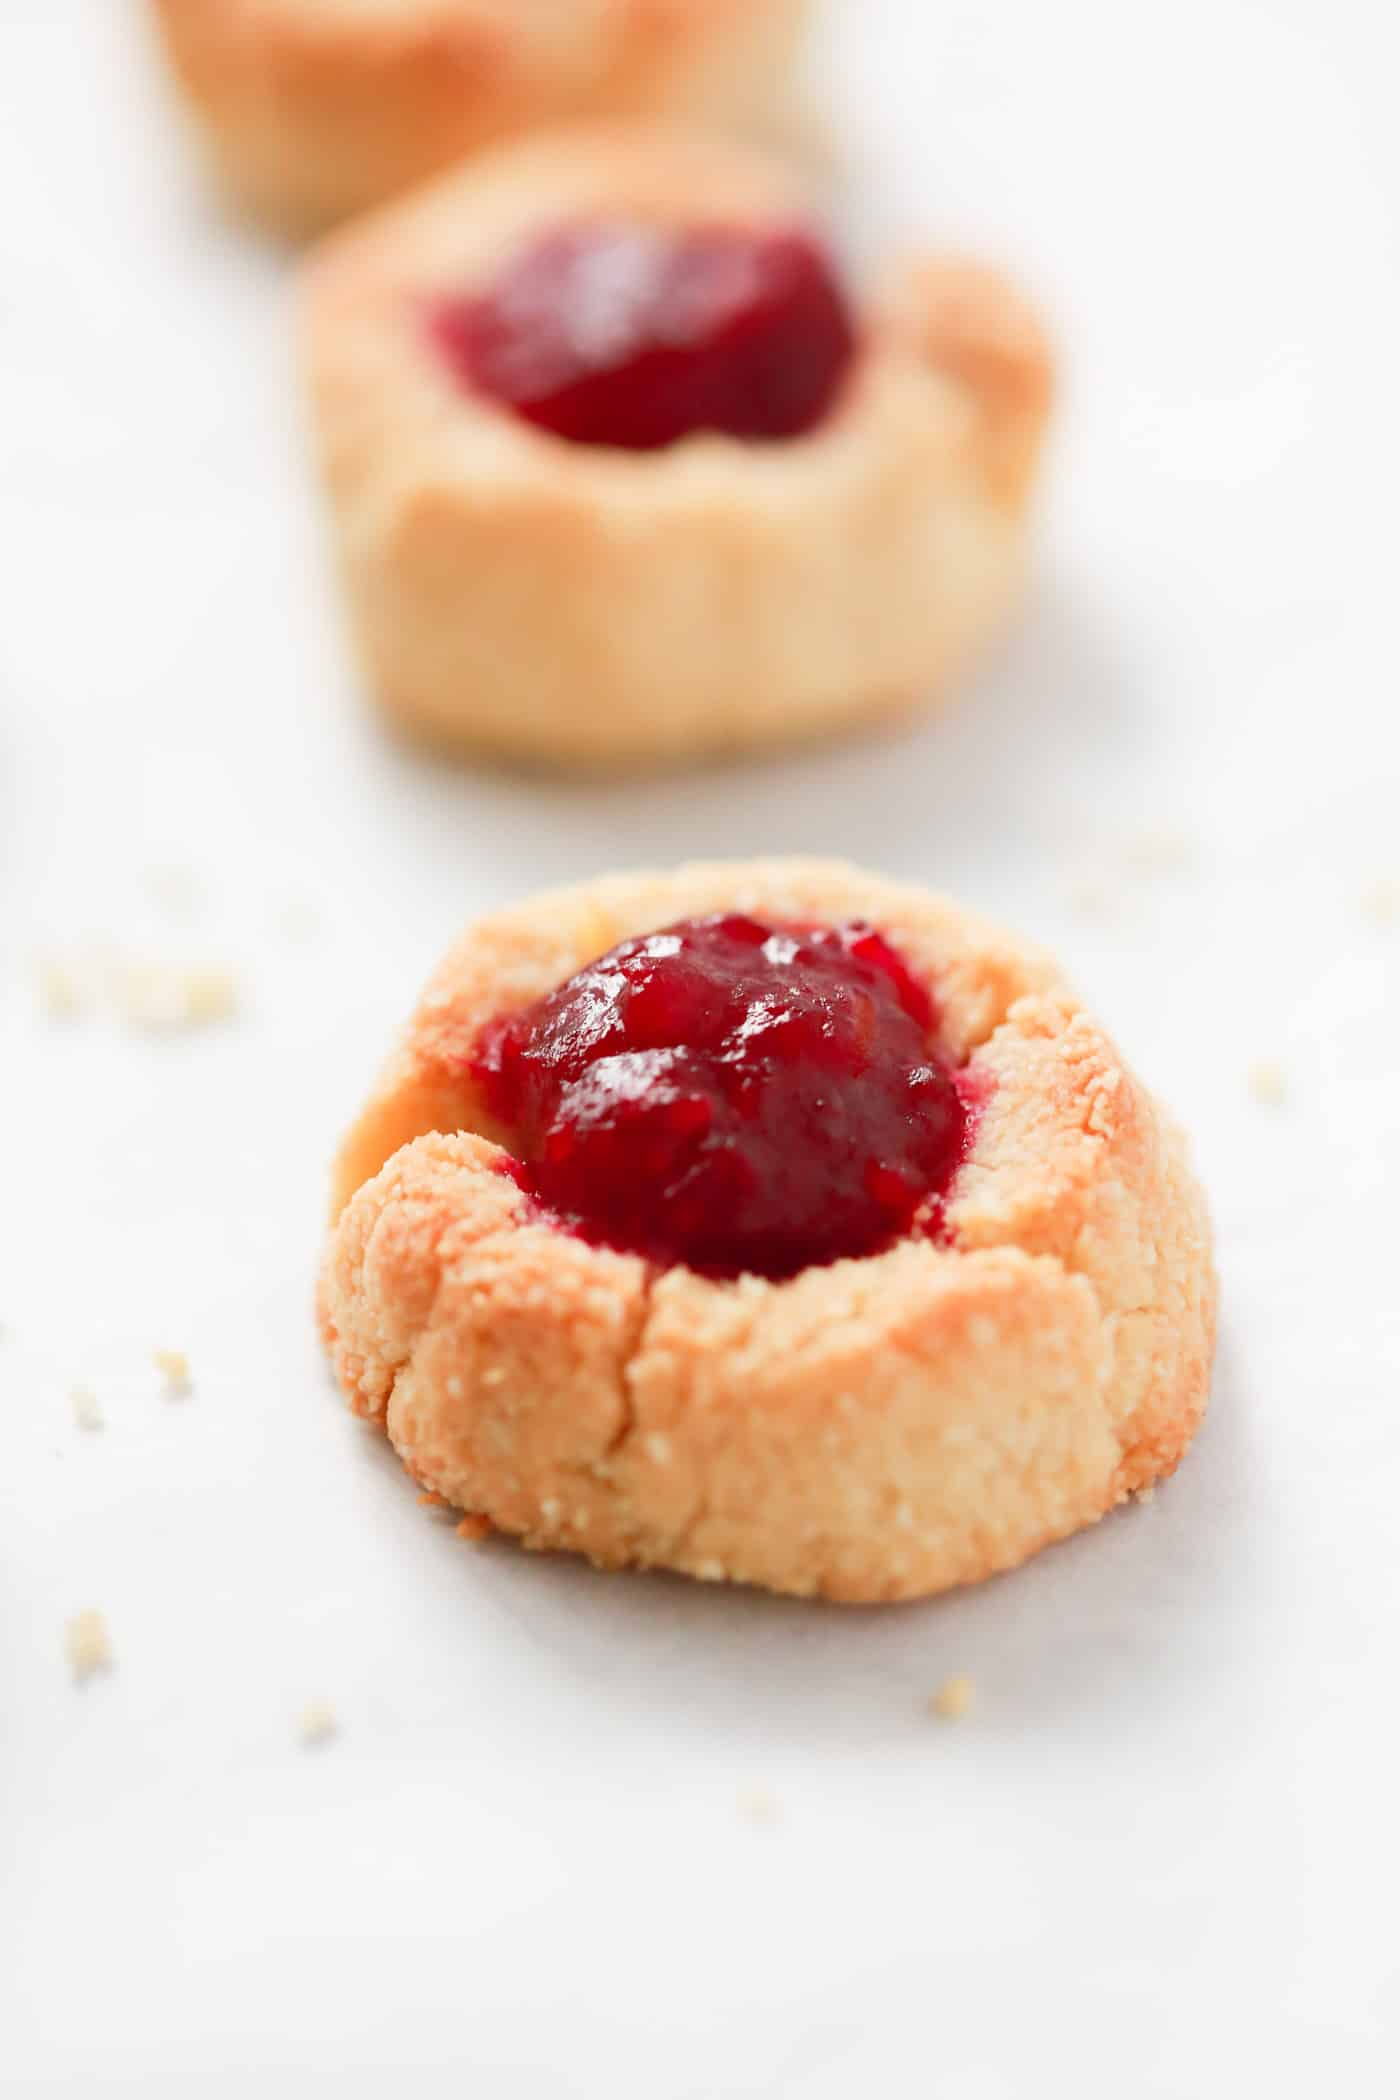 Delicious Low-carb Cranberry Thumbprint Cookies made with almond flour, butter, vanilla extract, natural sweetener and homemade cranberry sauce/jam. It's gluten-free, sugar-free and tastes amazing!